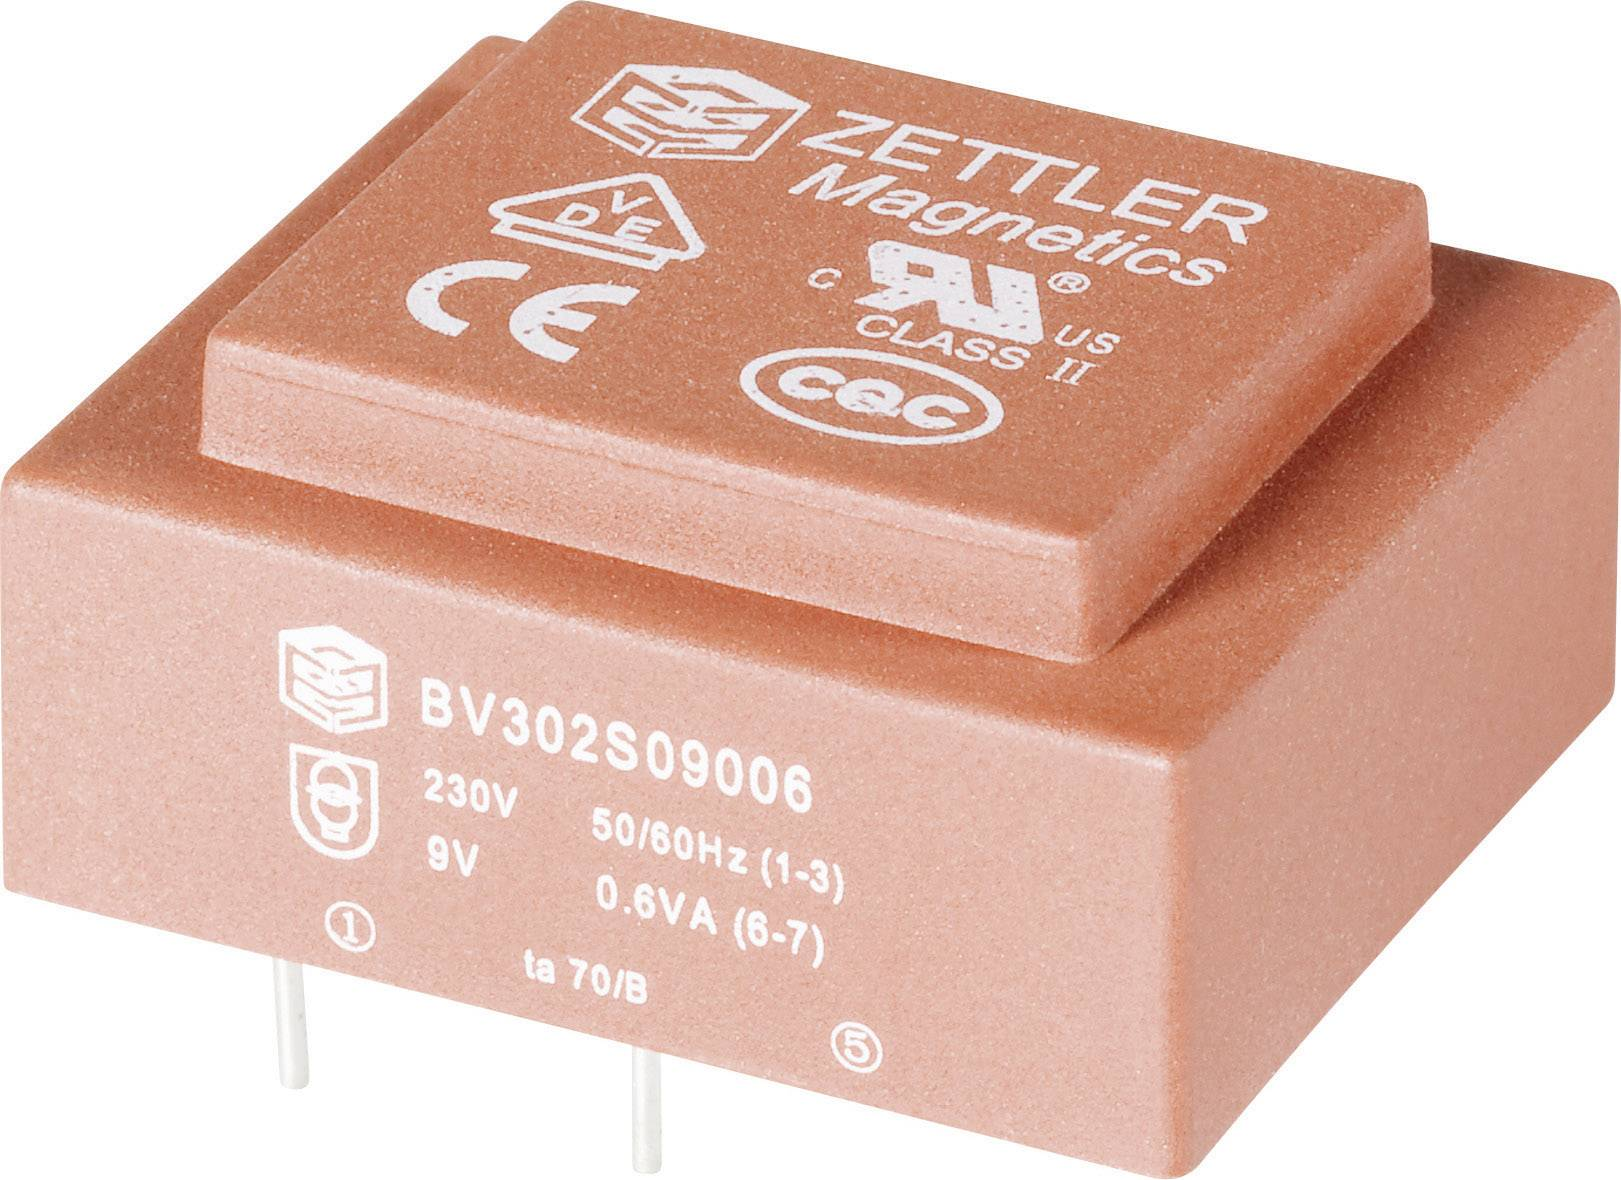 Transformátor do DPS Zettler Magnetics El30, 230 V/2x 6 V, 2x 50 mA, 2 VA